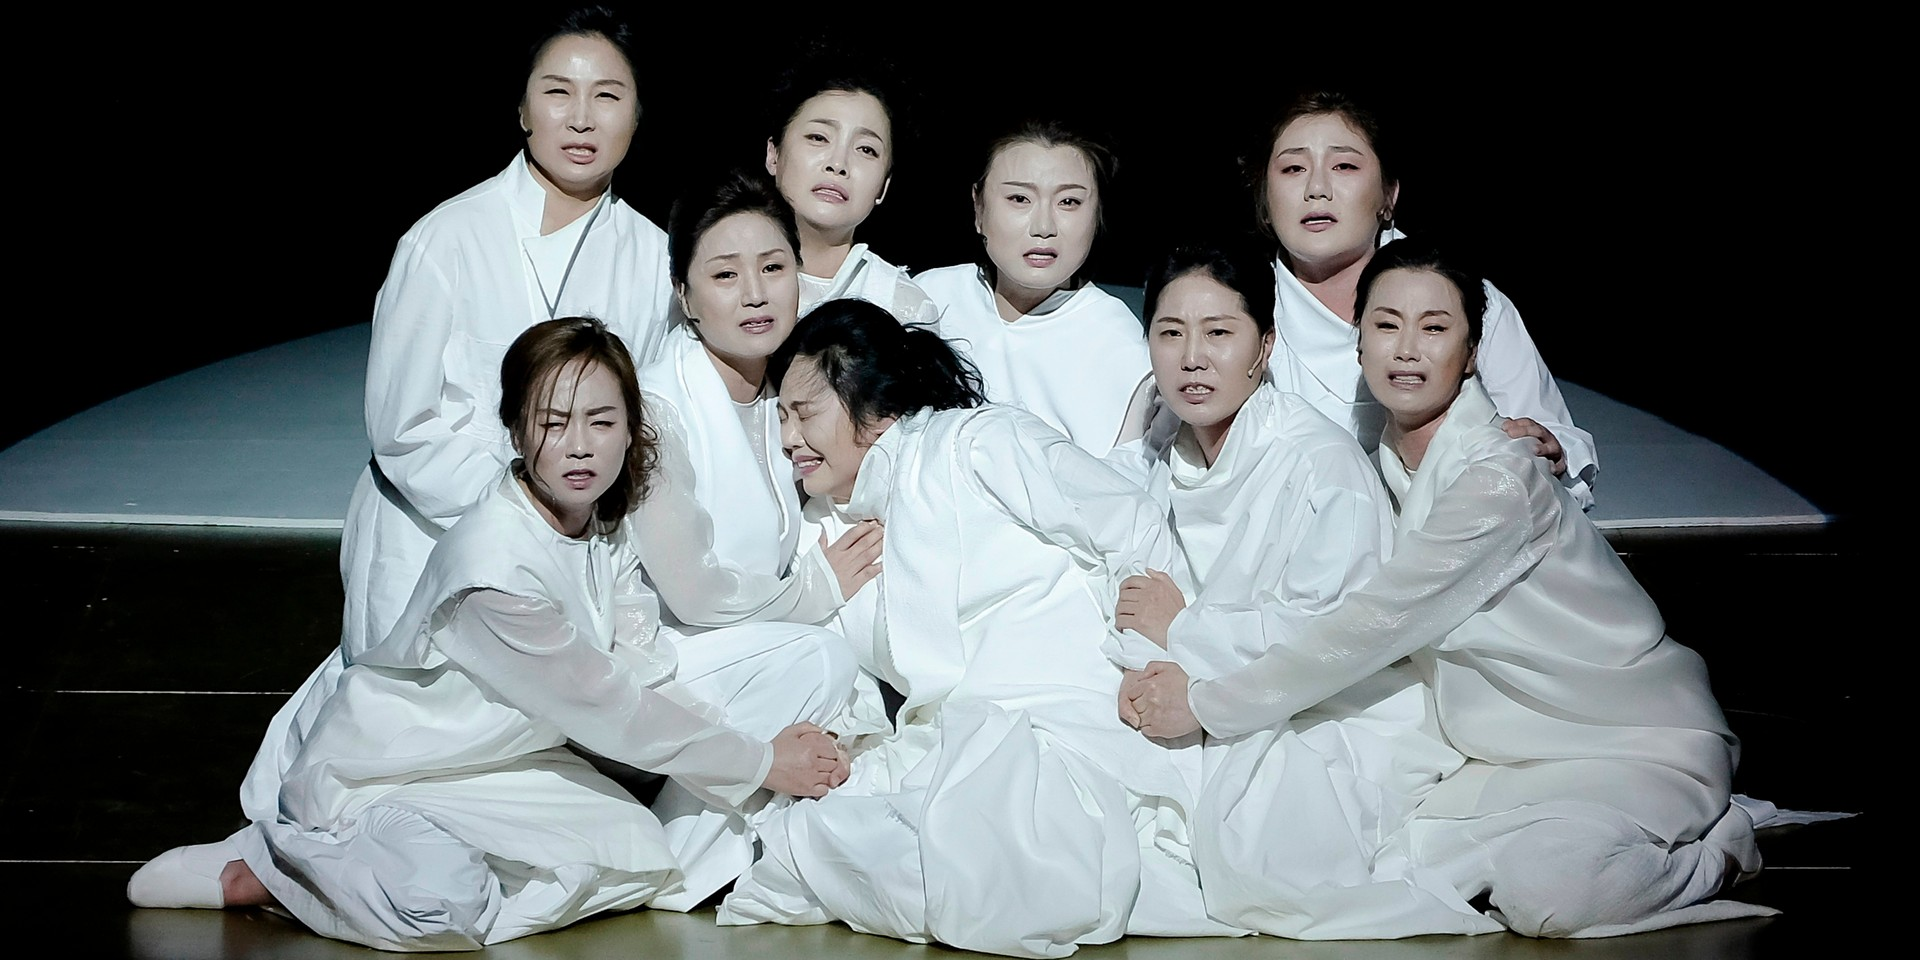 Musical production Trojan Women explores K-pop and traditional music in first Singapore dates